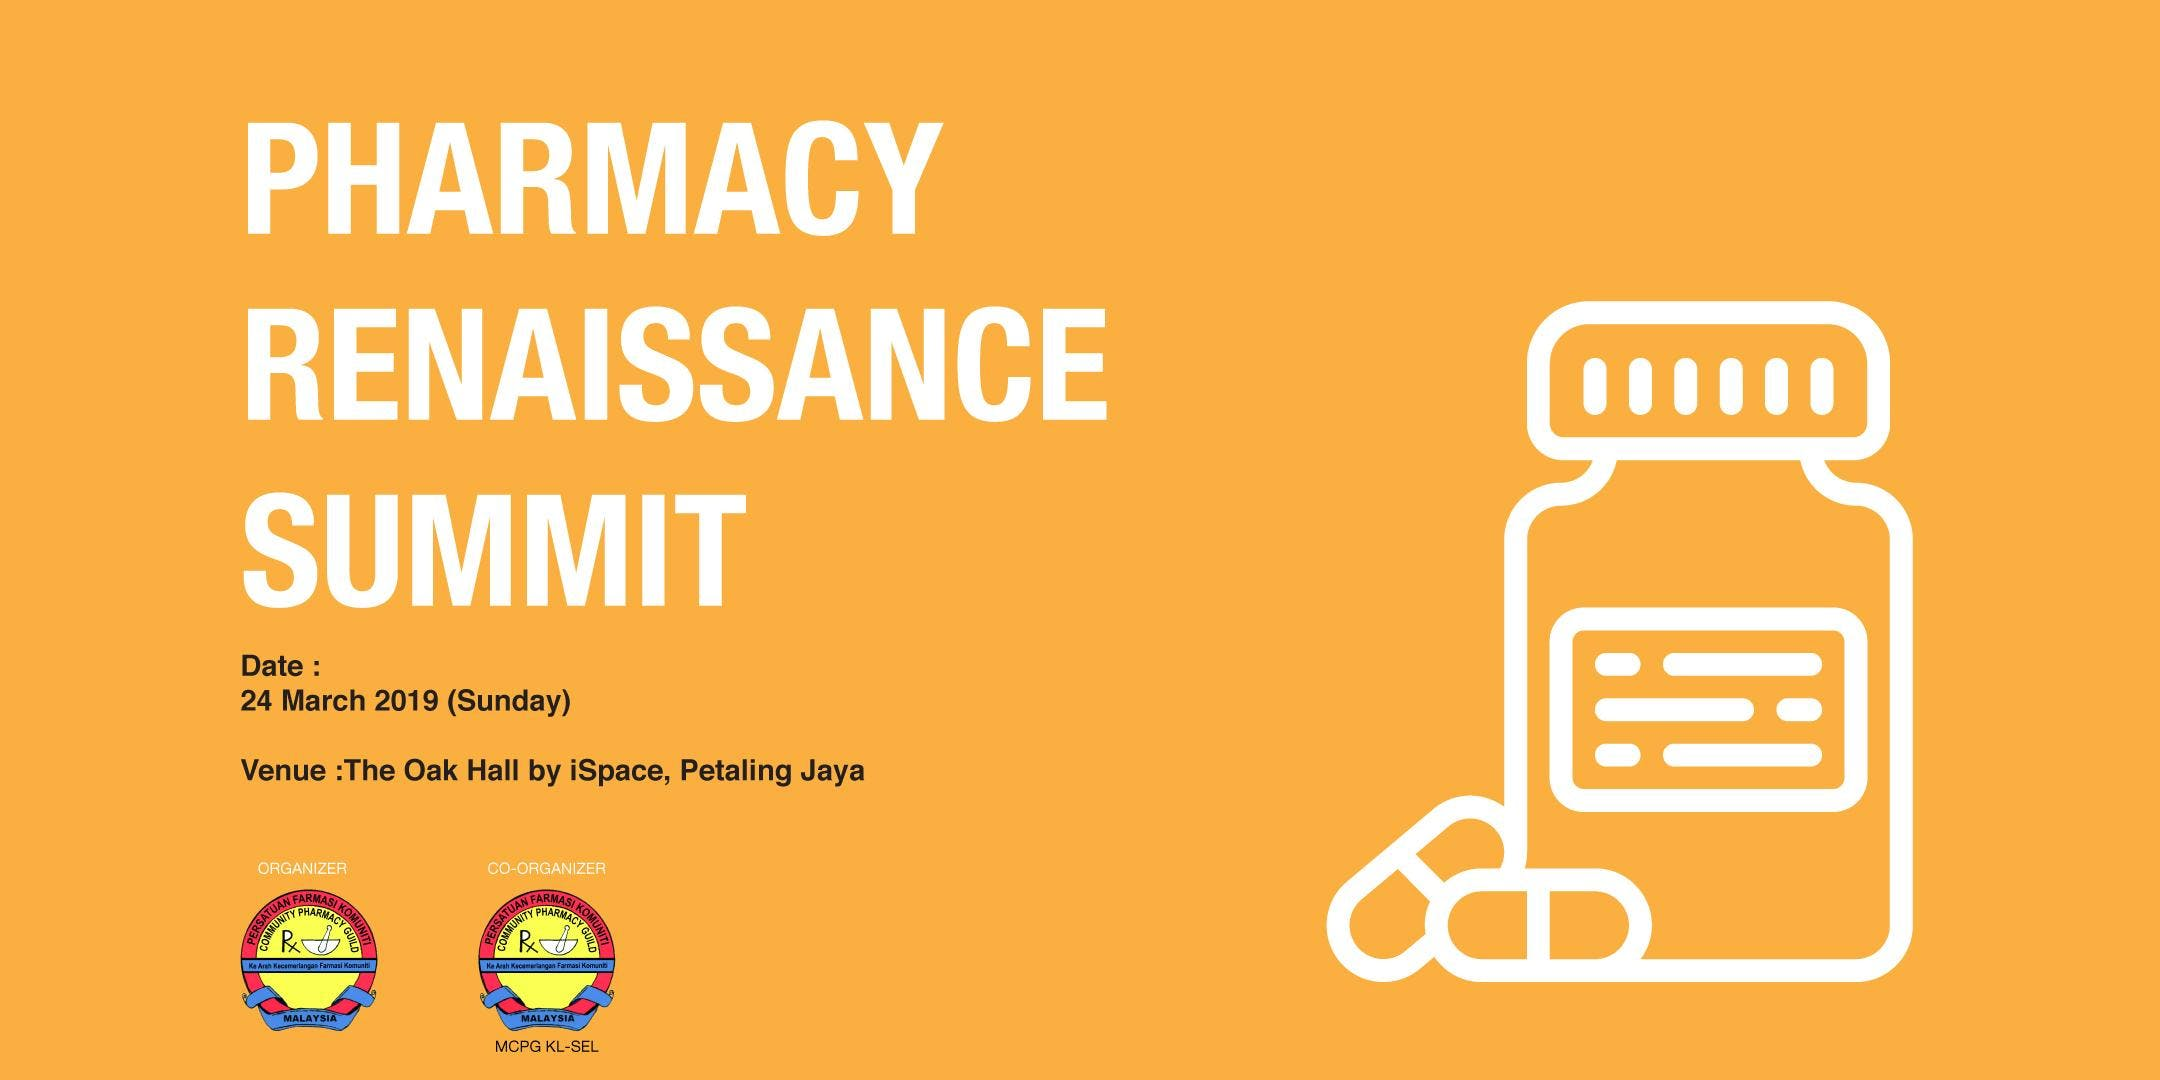 PHARMACY RENAISSANCE SUMMIT 2019